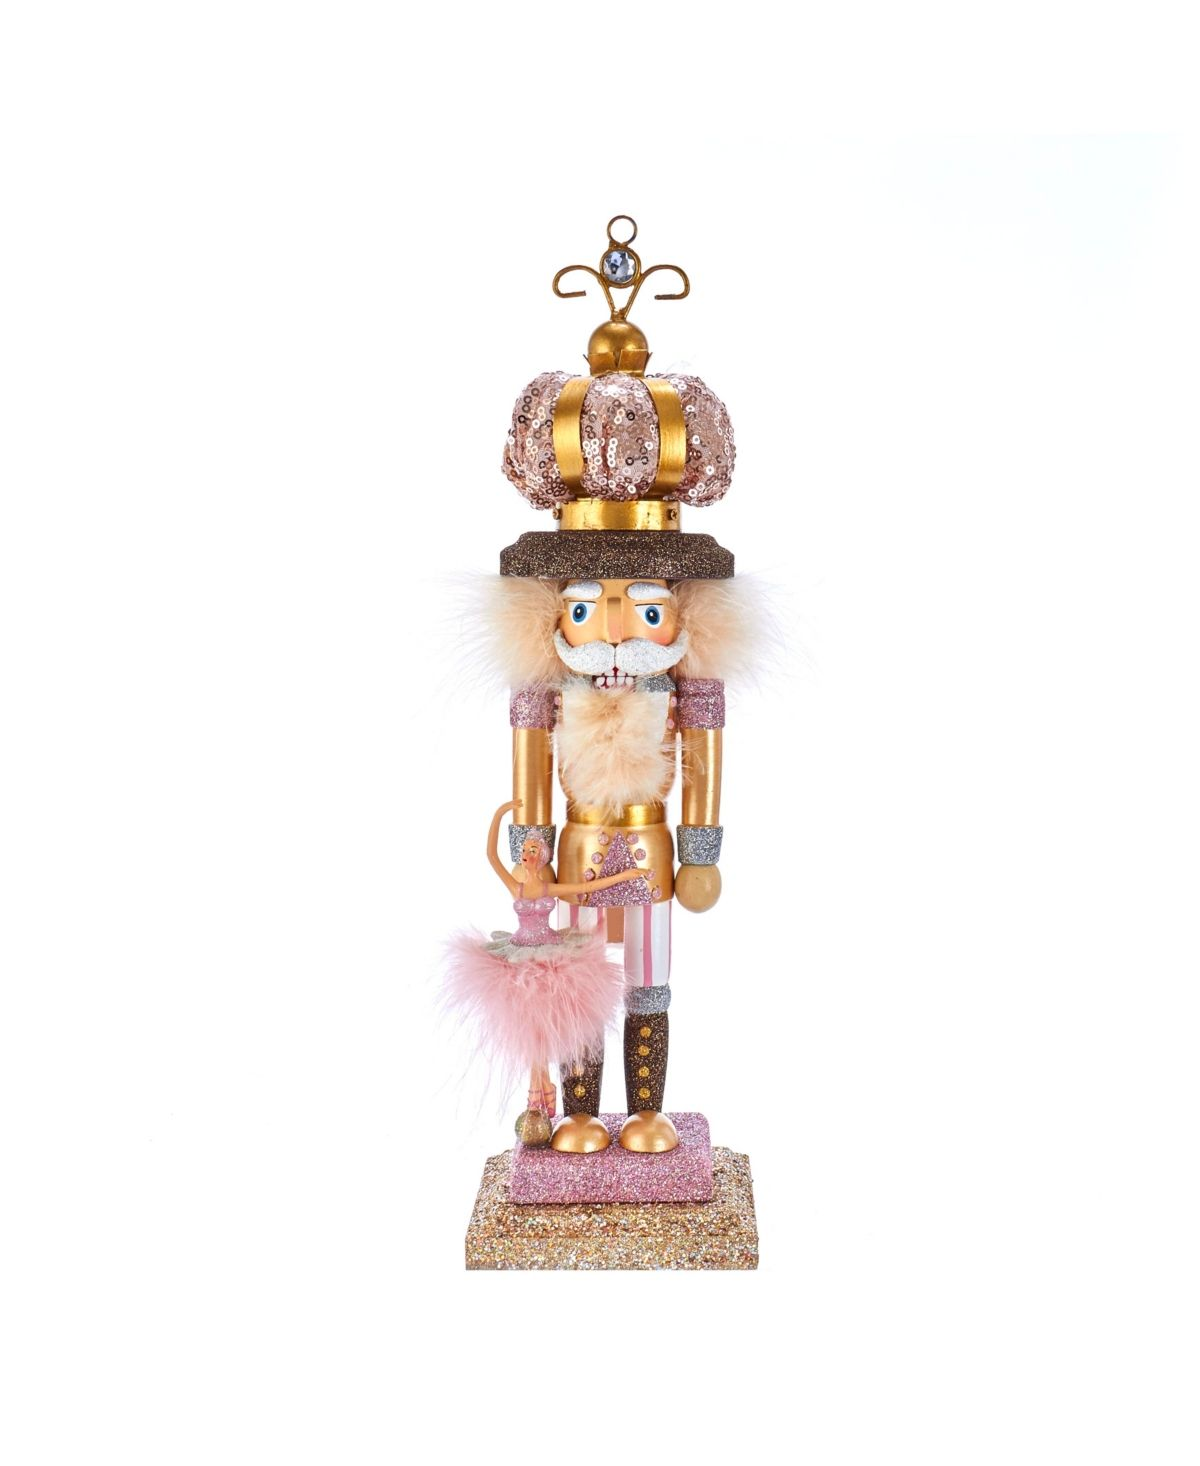 Designed by renowned artist Holly Adler, Hollywood Nutcrackers are created exclusively for Kurt Adler. This 14